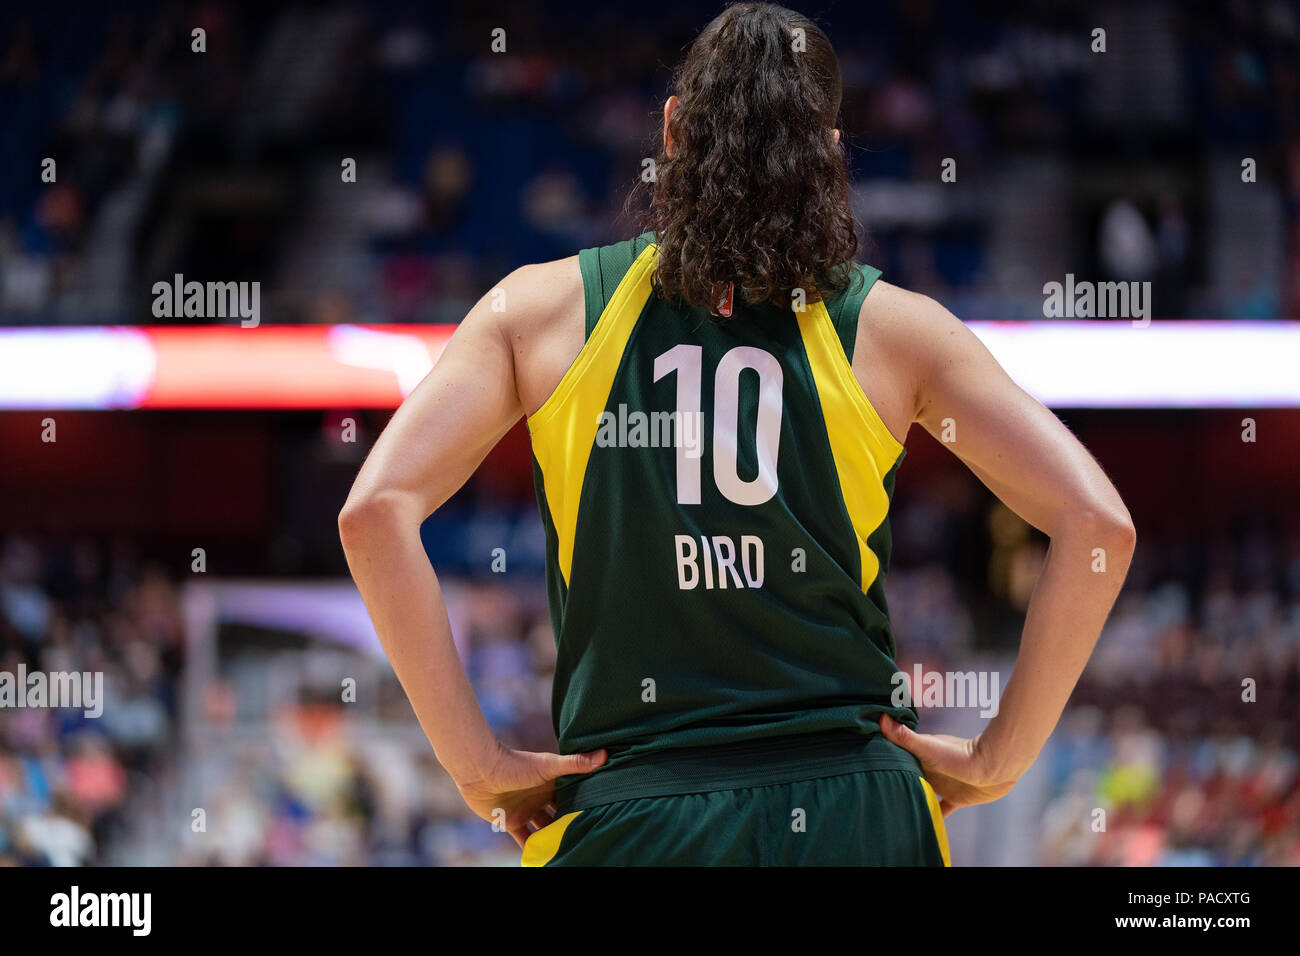 Wnba 2018 Stock Photos   Wnba 2018 Stock Images - Alamy 4c9346819158